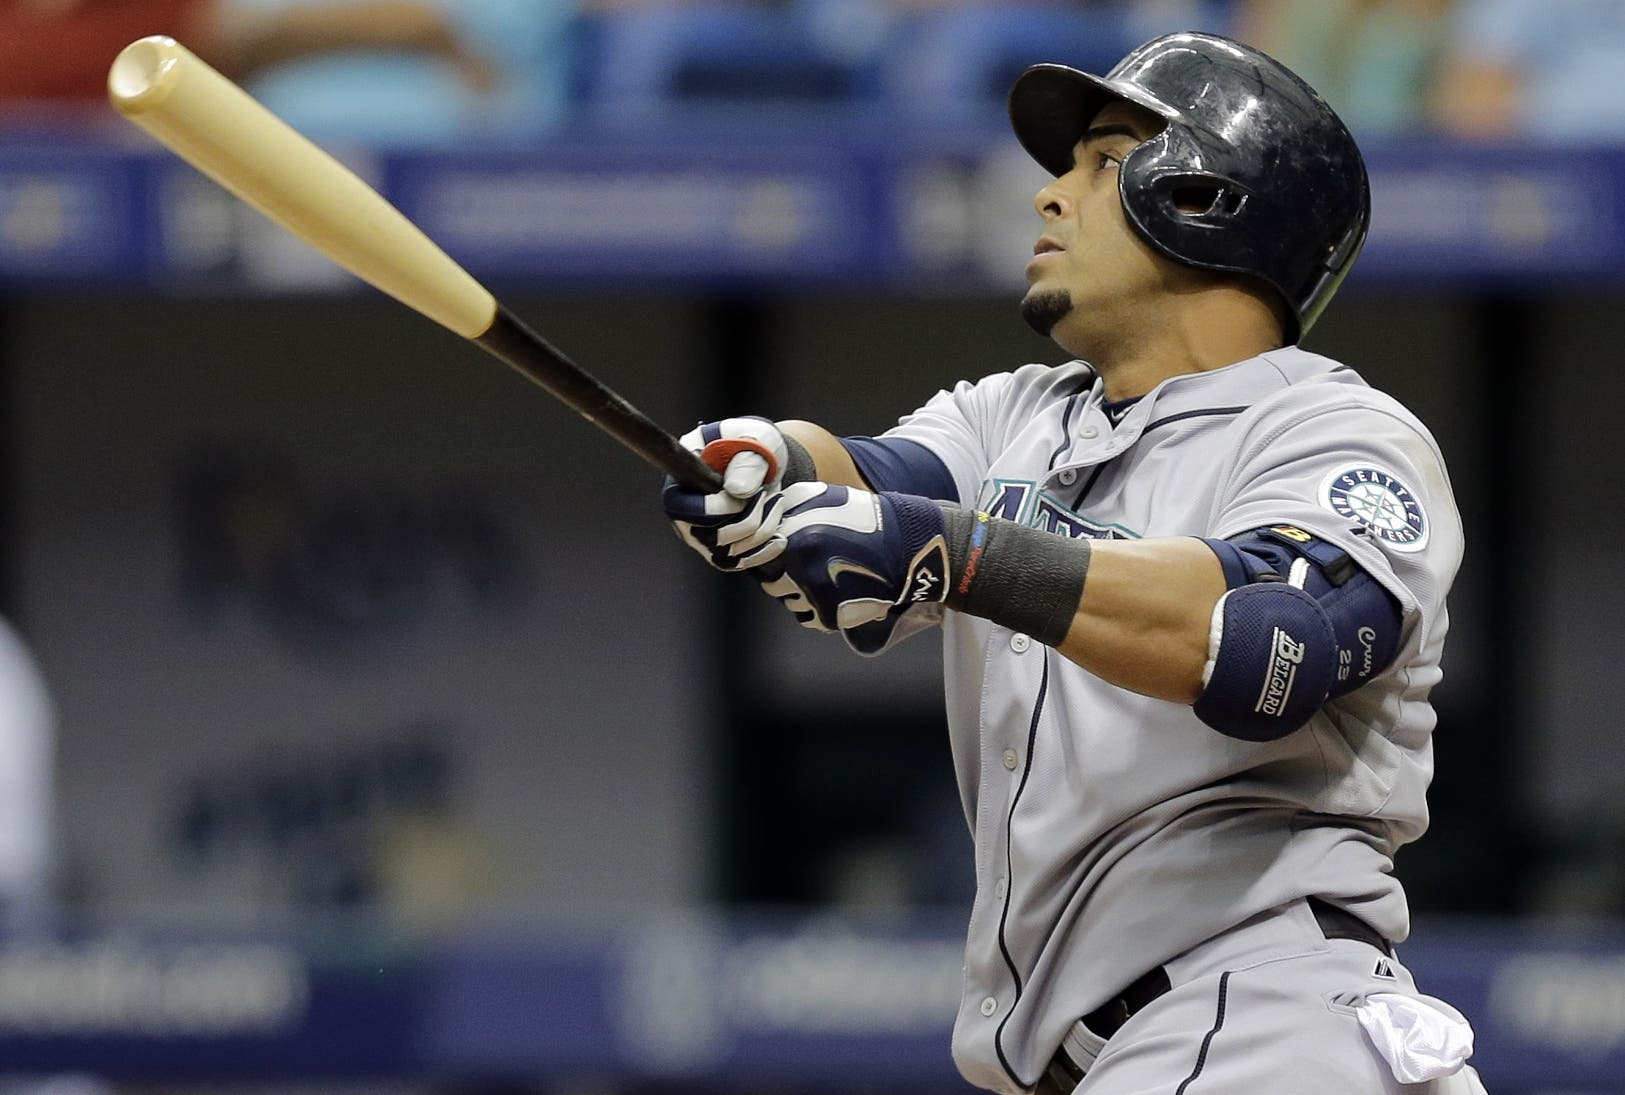 Seattle Mariners' Nelson Cruz follows the flight of his three-run home run off Tampa Bay Rays relief pitcher Brad Boxberger during the ninth inning of a baseball game Wednesday, May 27, 2015, in St. Petersburg, Fla.  Mariners' Chris Taylor, and Robinson Cano also scored on the hit.  The Mariners won the game 3-0. (AP Photo/Chris O'Meara)